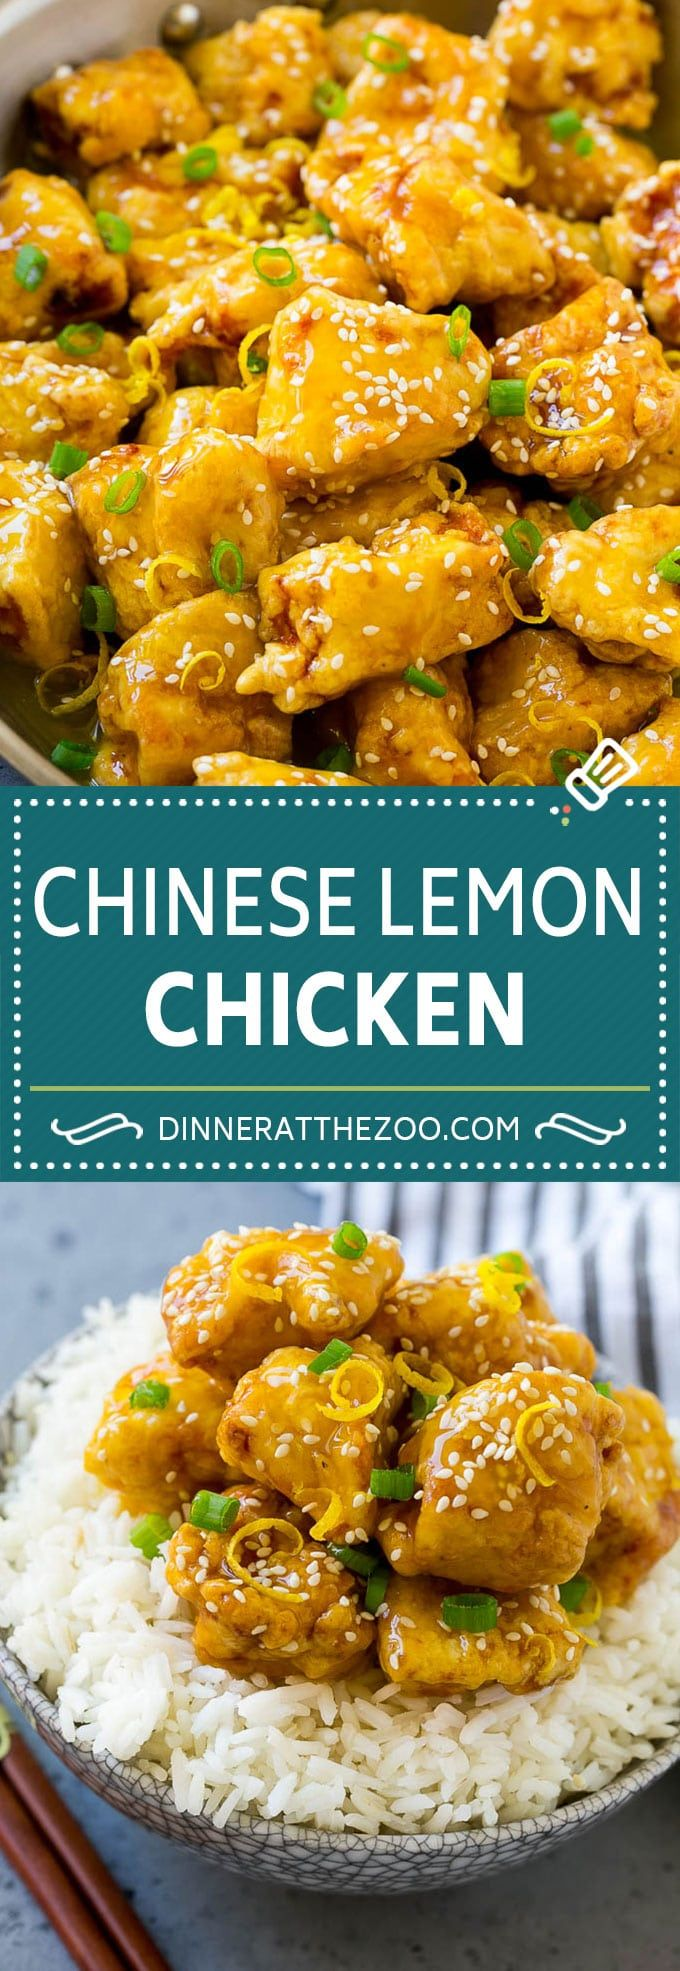 Chinese Lemon Chicken Recipe | Crispy Lemon Chicken | Chinese Food Recipe #lemon #chicken #chinesefood #dinner #dinneratthezoo #chinesefood